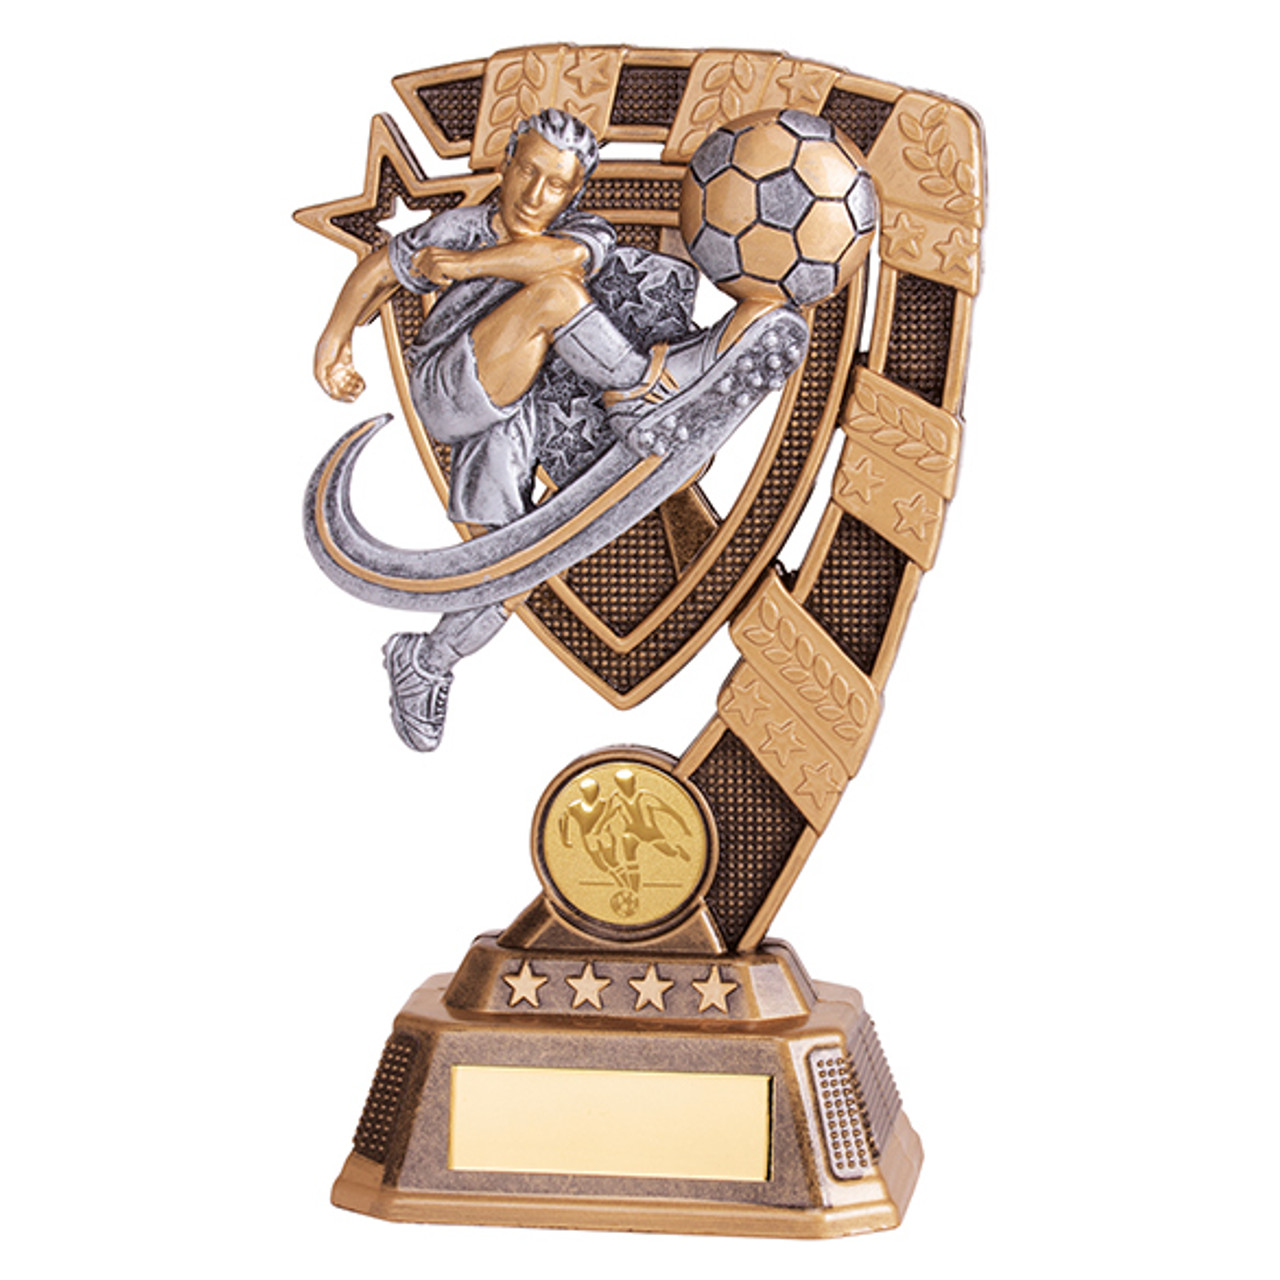 Euphoria Male Action Football trophy RF19066 with FREE Engraving